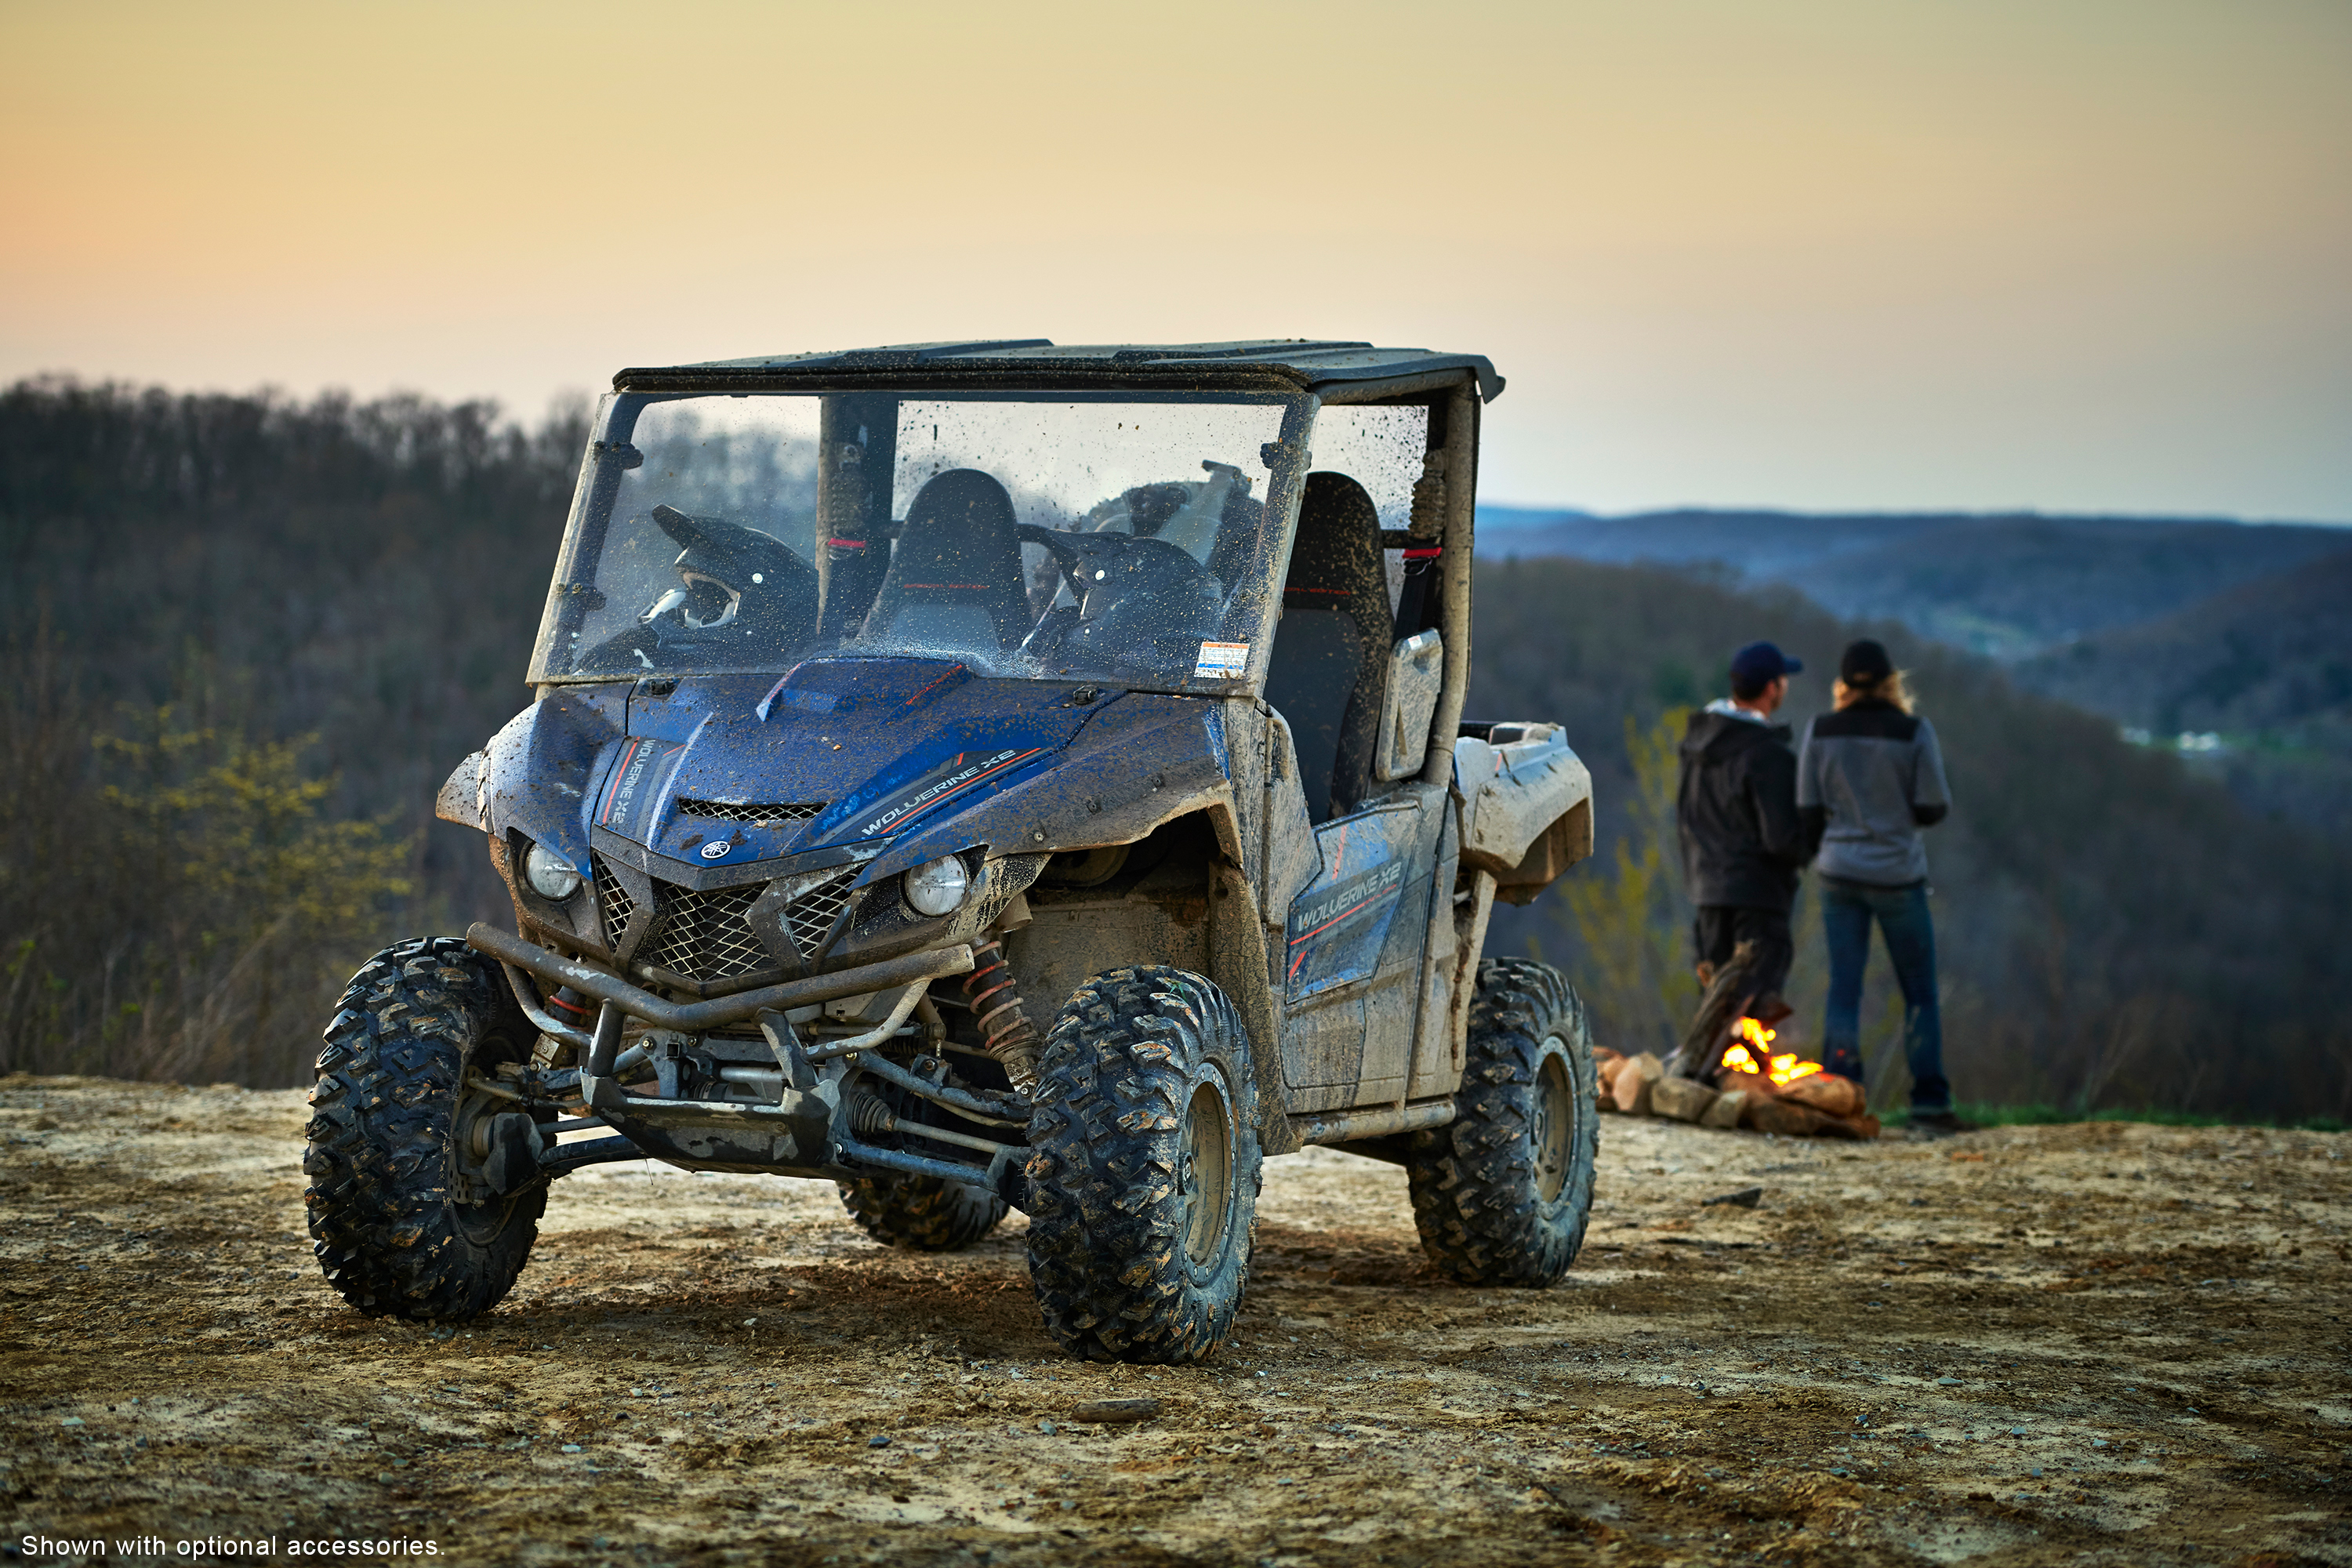 Wolverine X2 Designed for Seasoned Trail-Goers and First-Time Adventure-Seekers